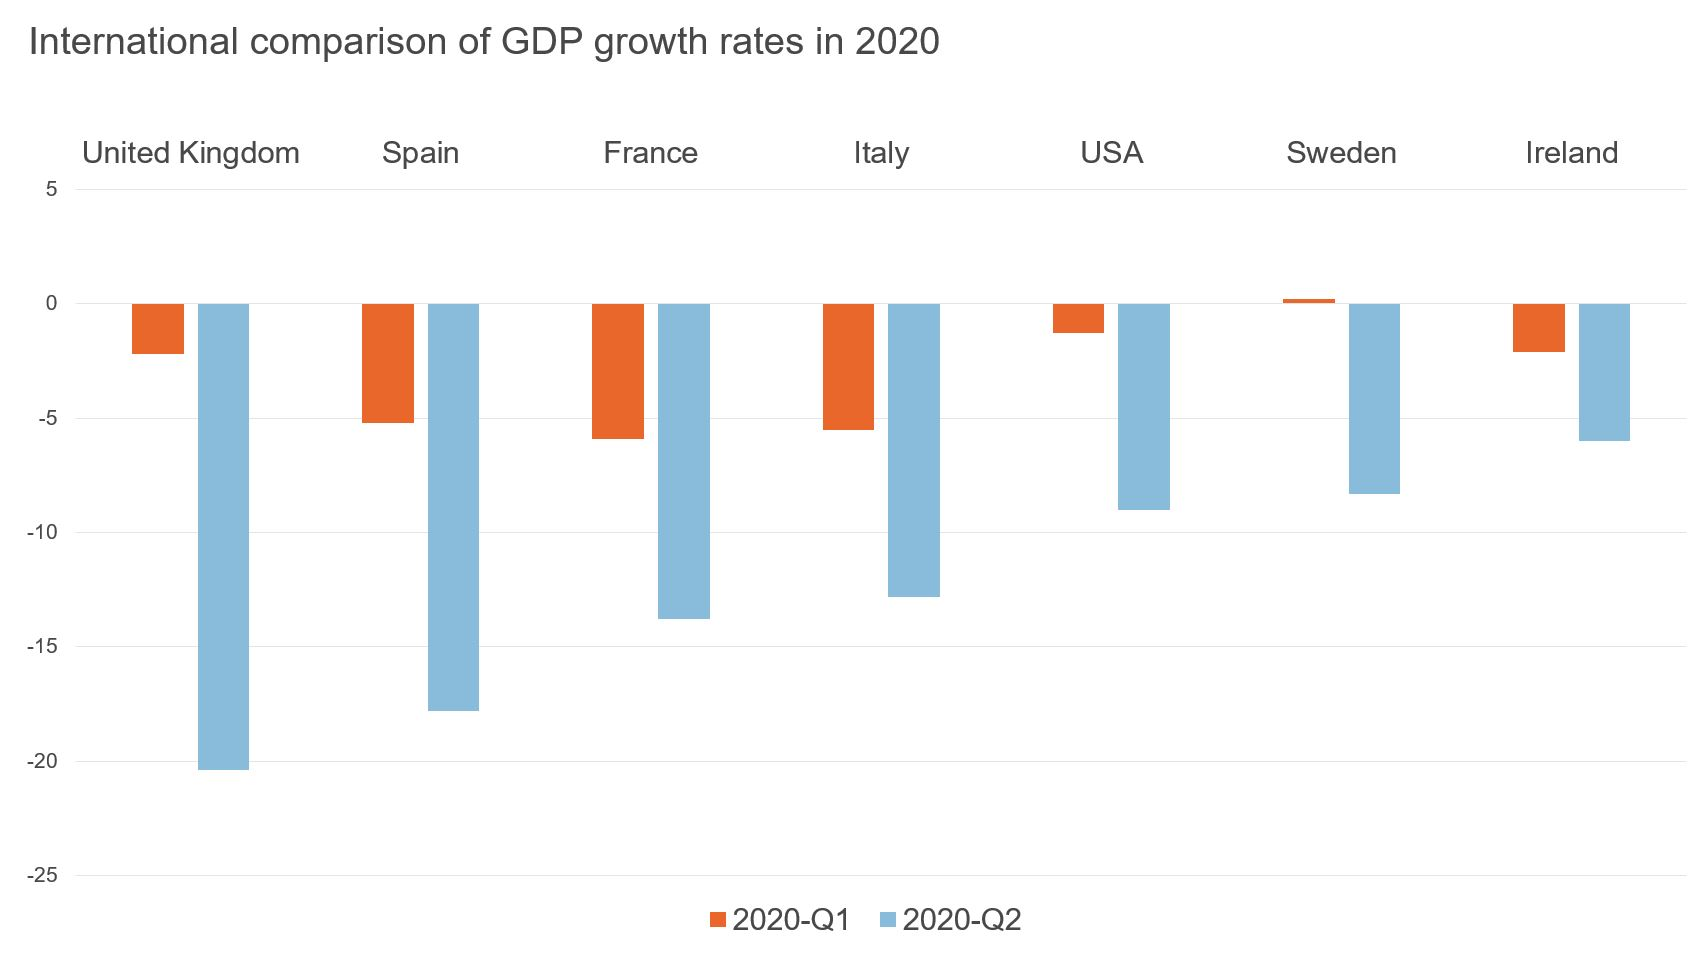 Figure showing comparison of GDP growth rates